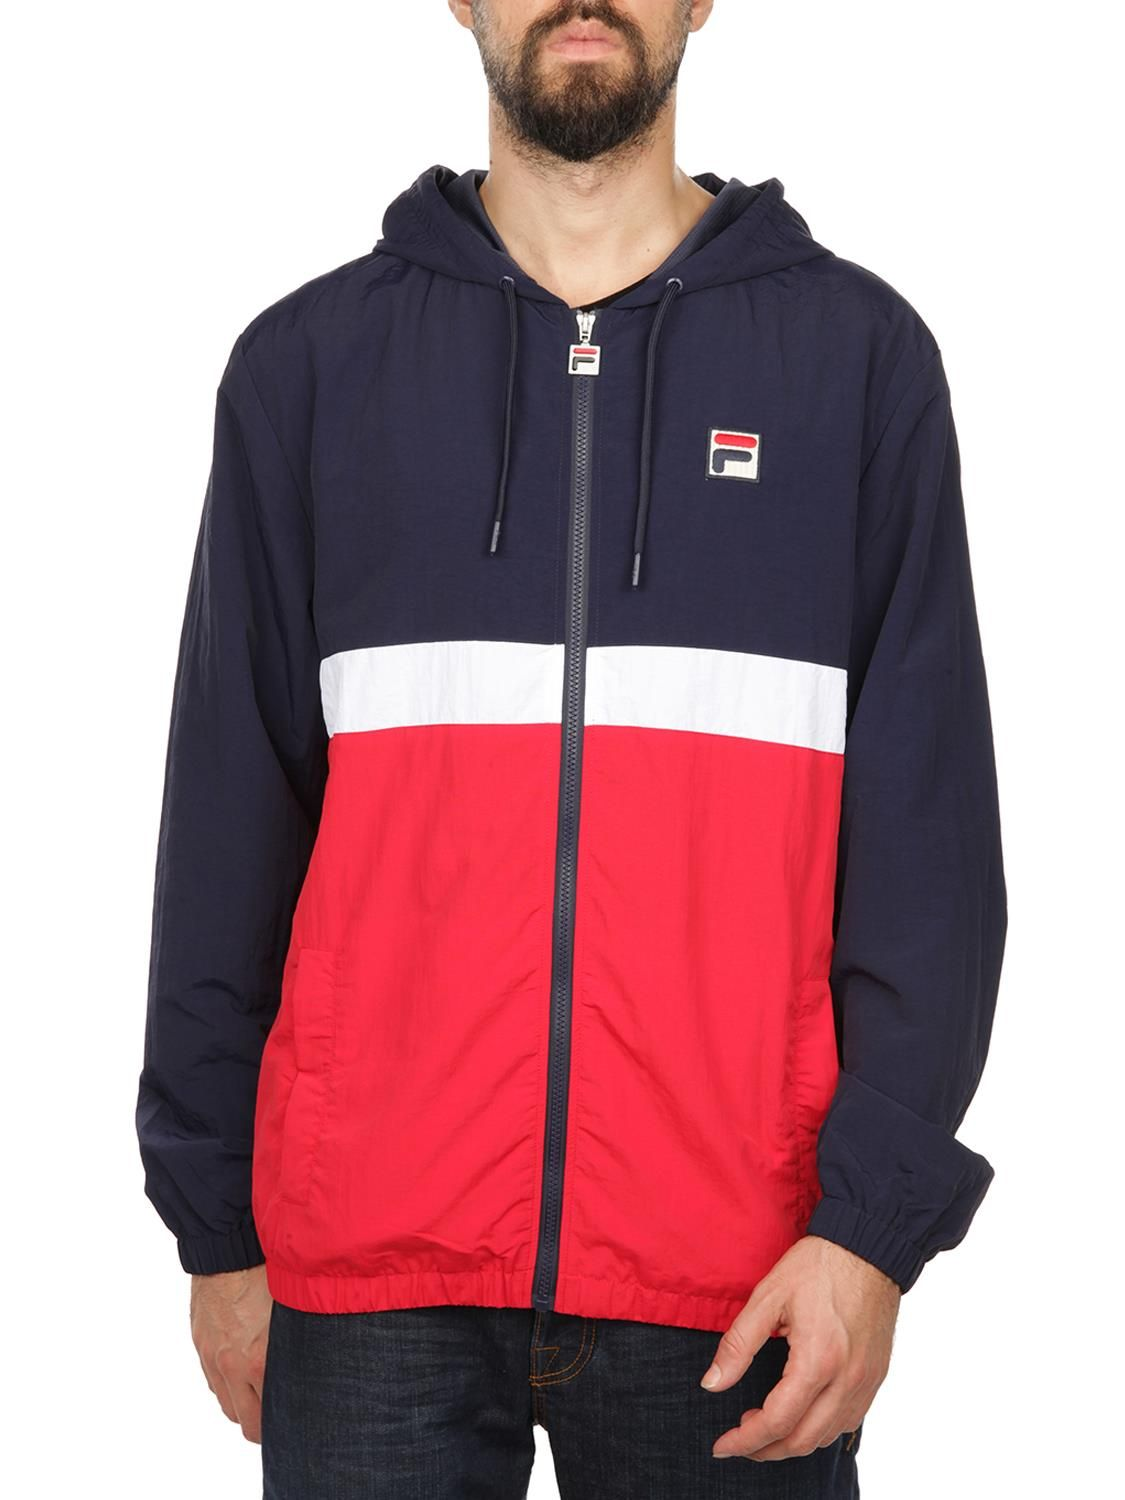 Fila Men's Blue Polyamide Sweatshirt